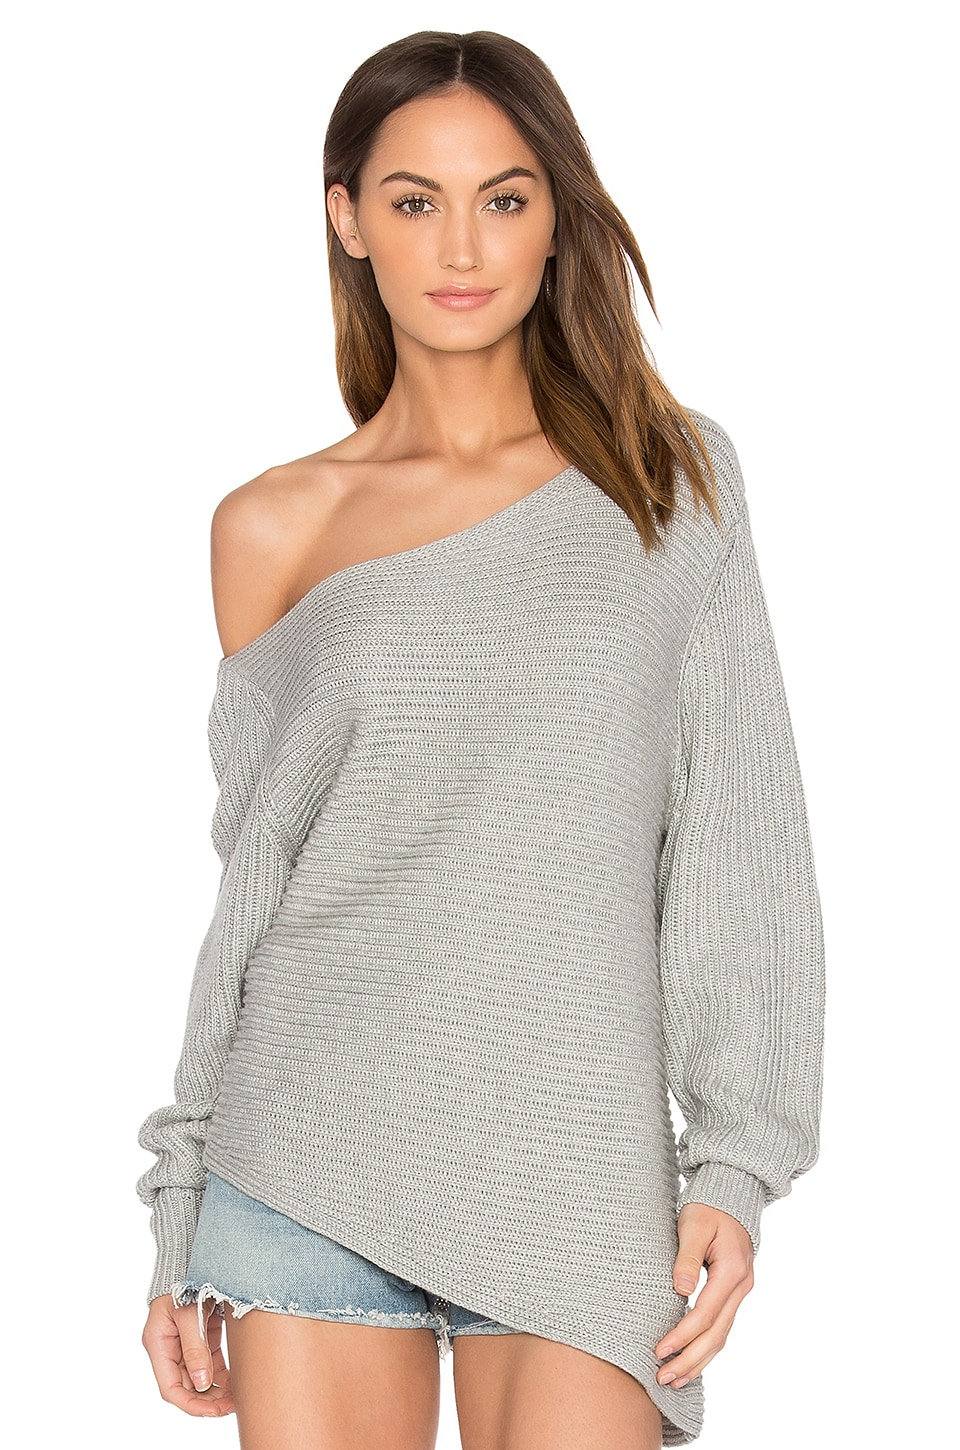 Steele Karla Knit in Soft Gray